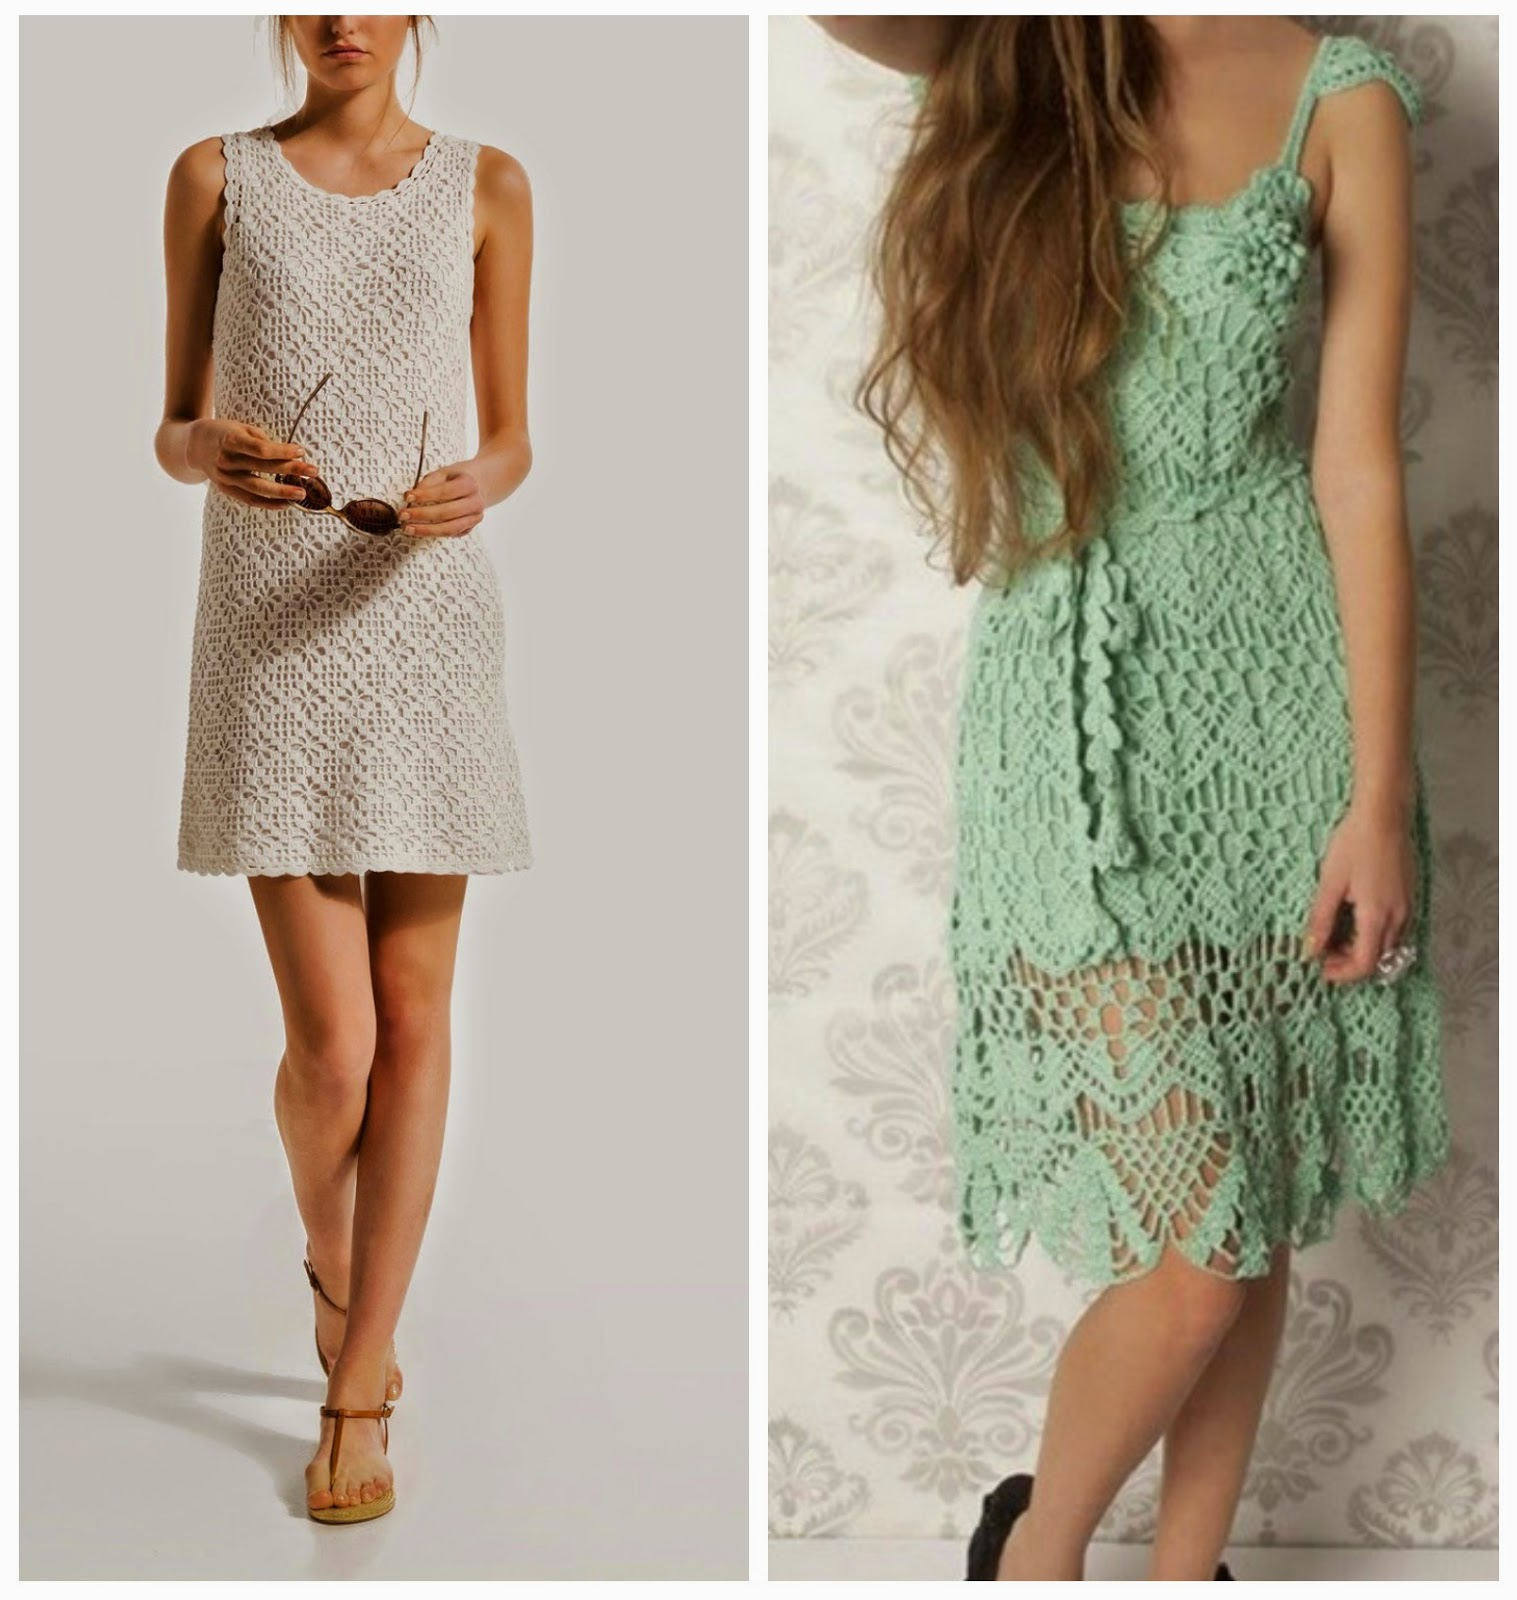 How To Crochet Dress Free Patterns : Little Treasures: 15 Crochet Dresses - free patterns and ...